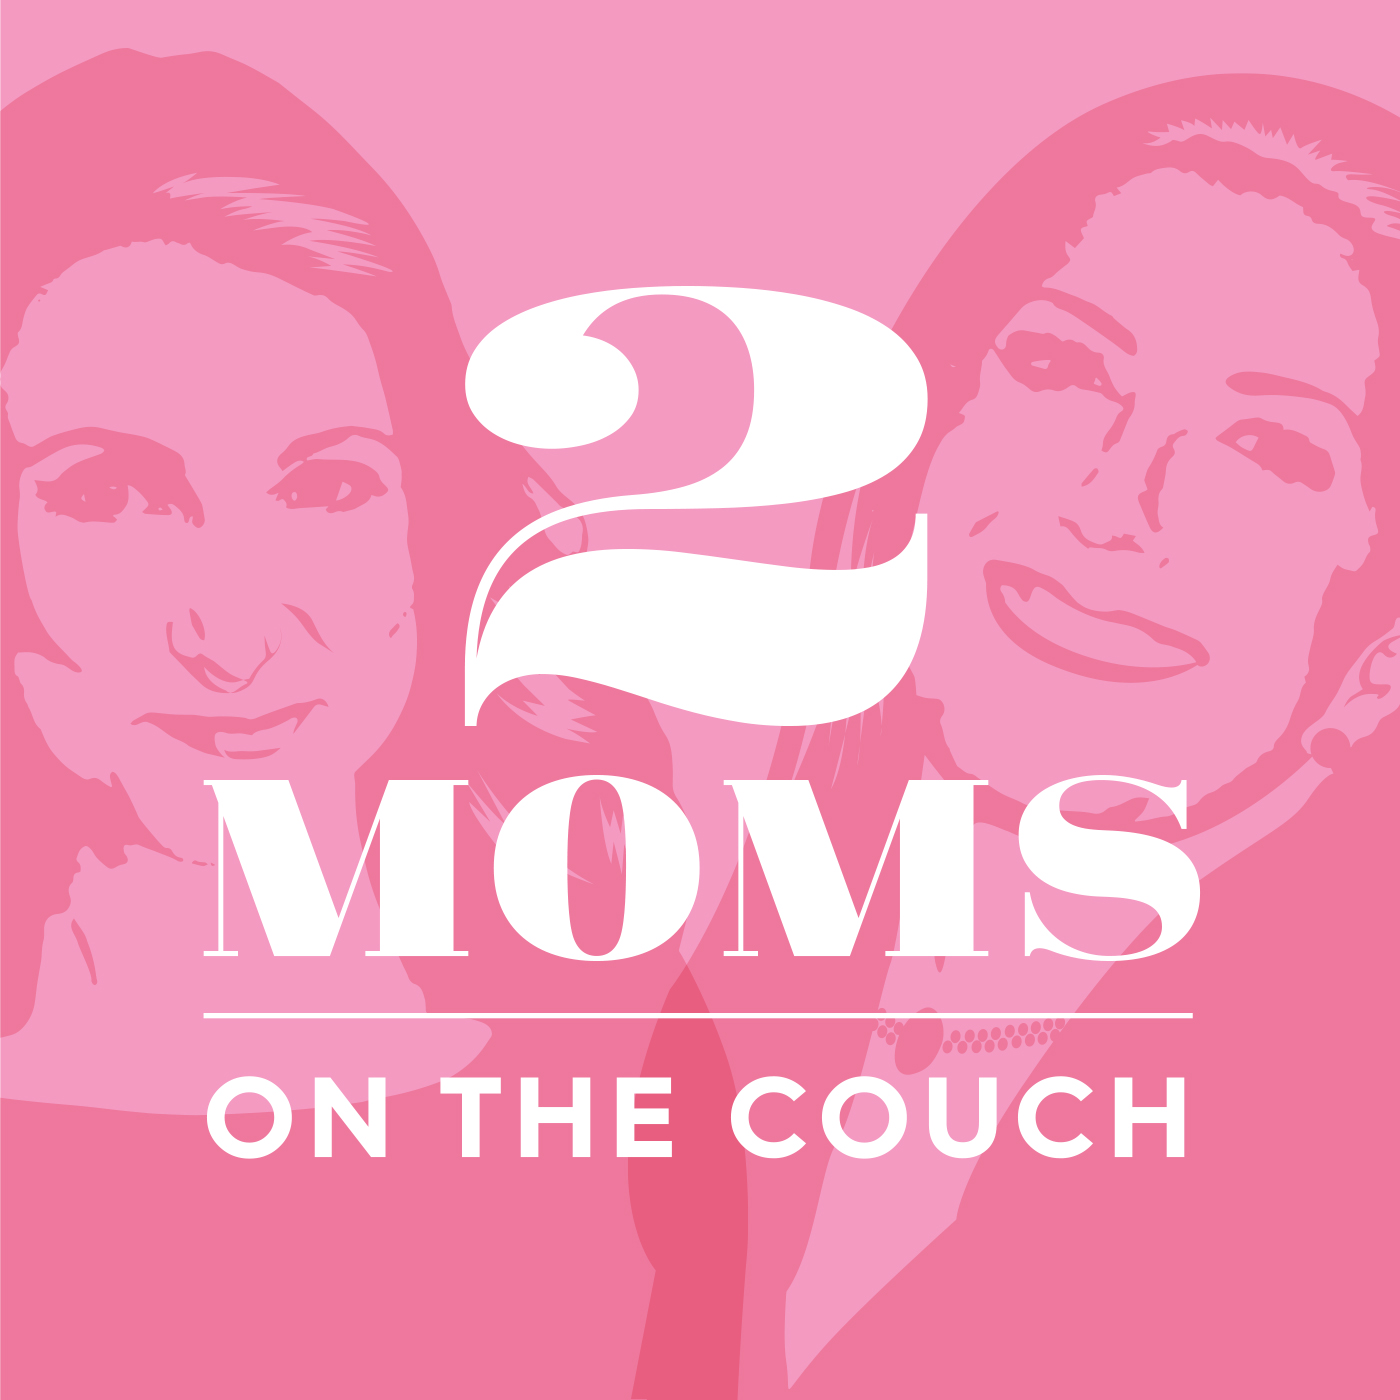 About us - Join Dana and Amy on the therapy couch as they figure out life's biggest issues.